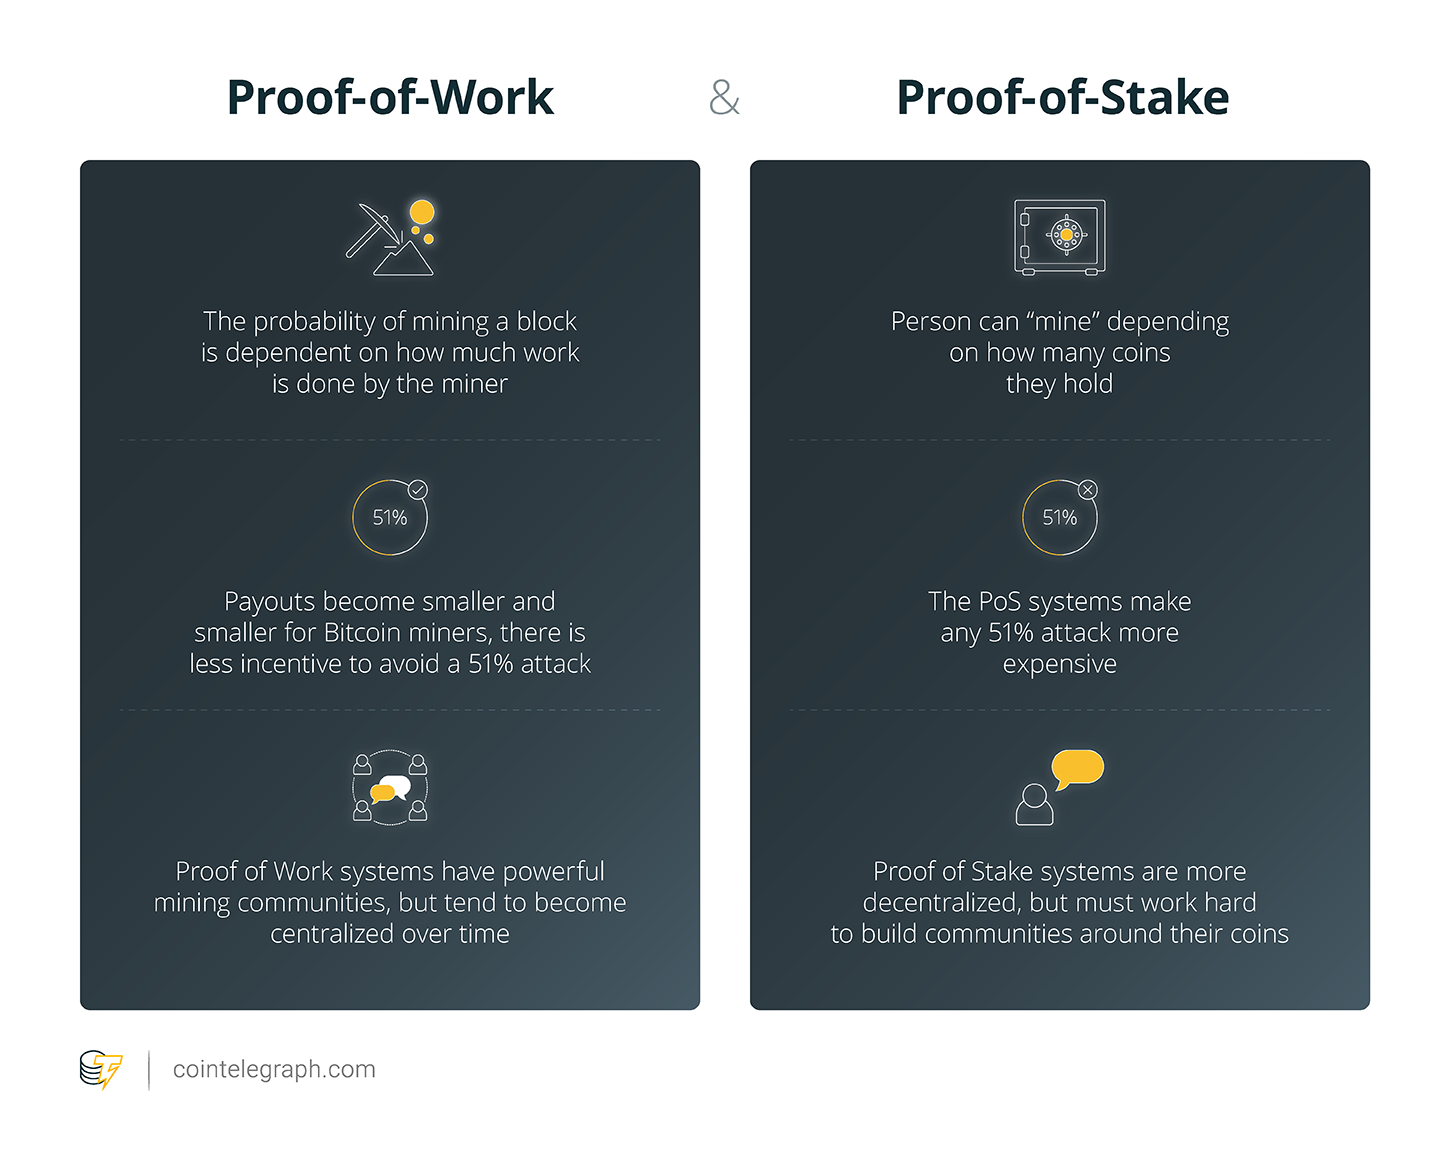 Proof-of-Work & Proof-of-Stake